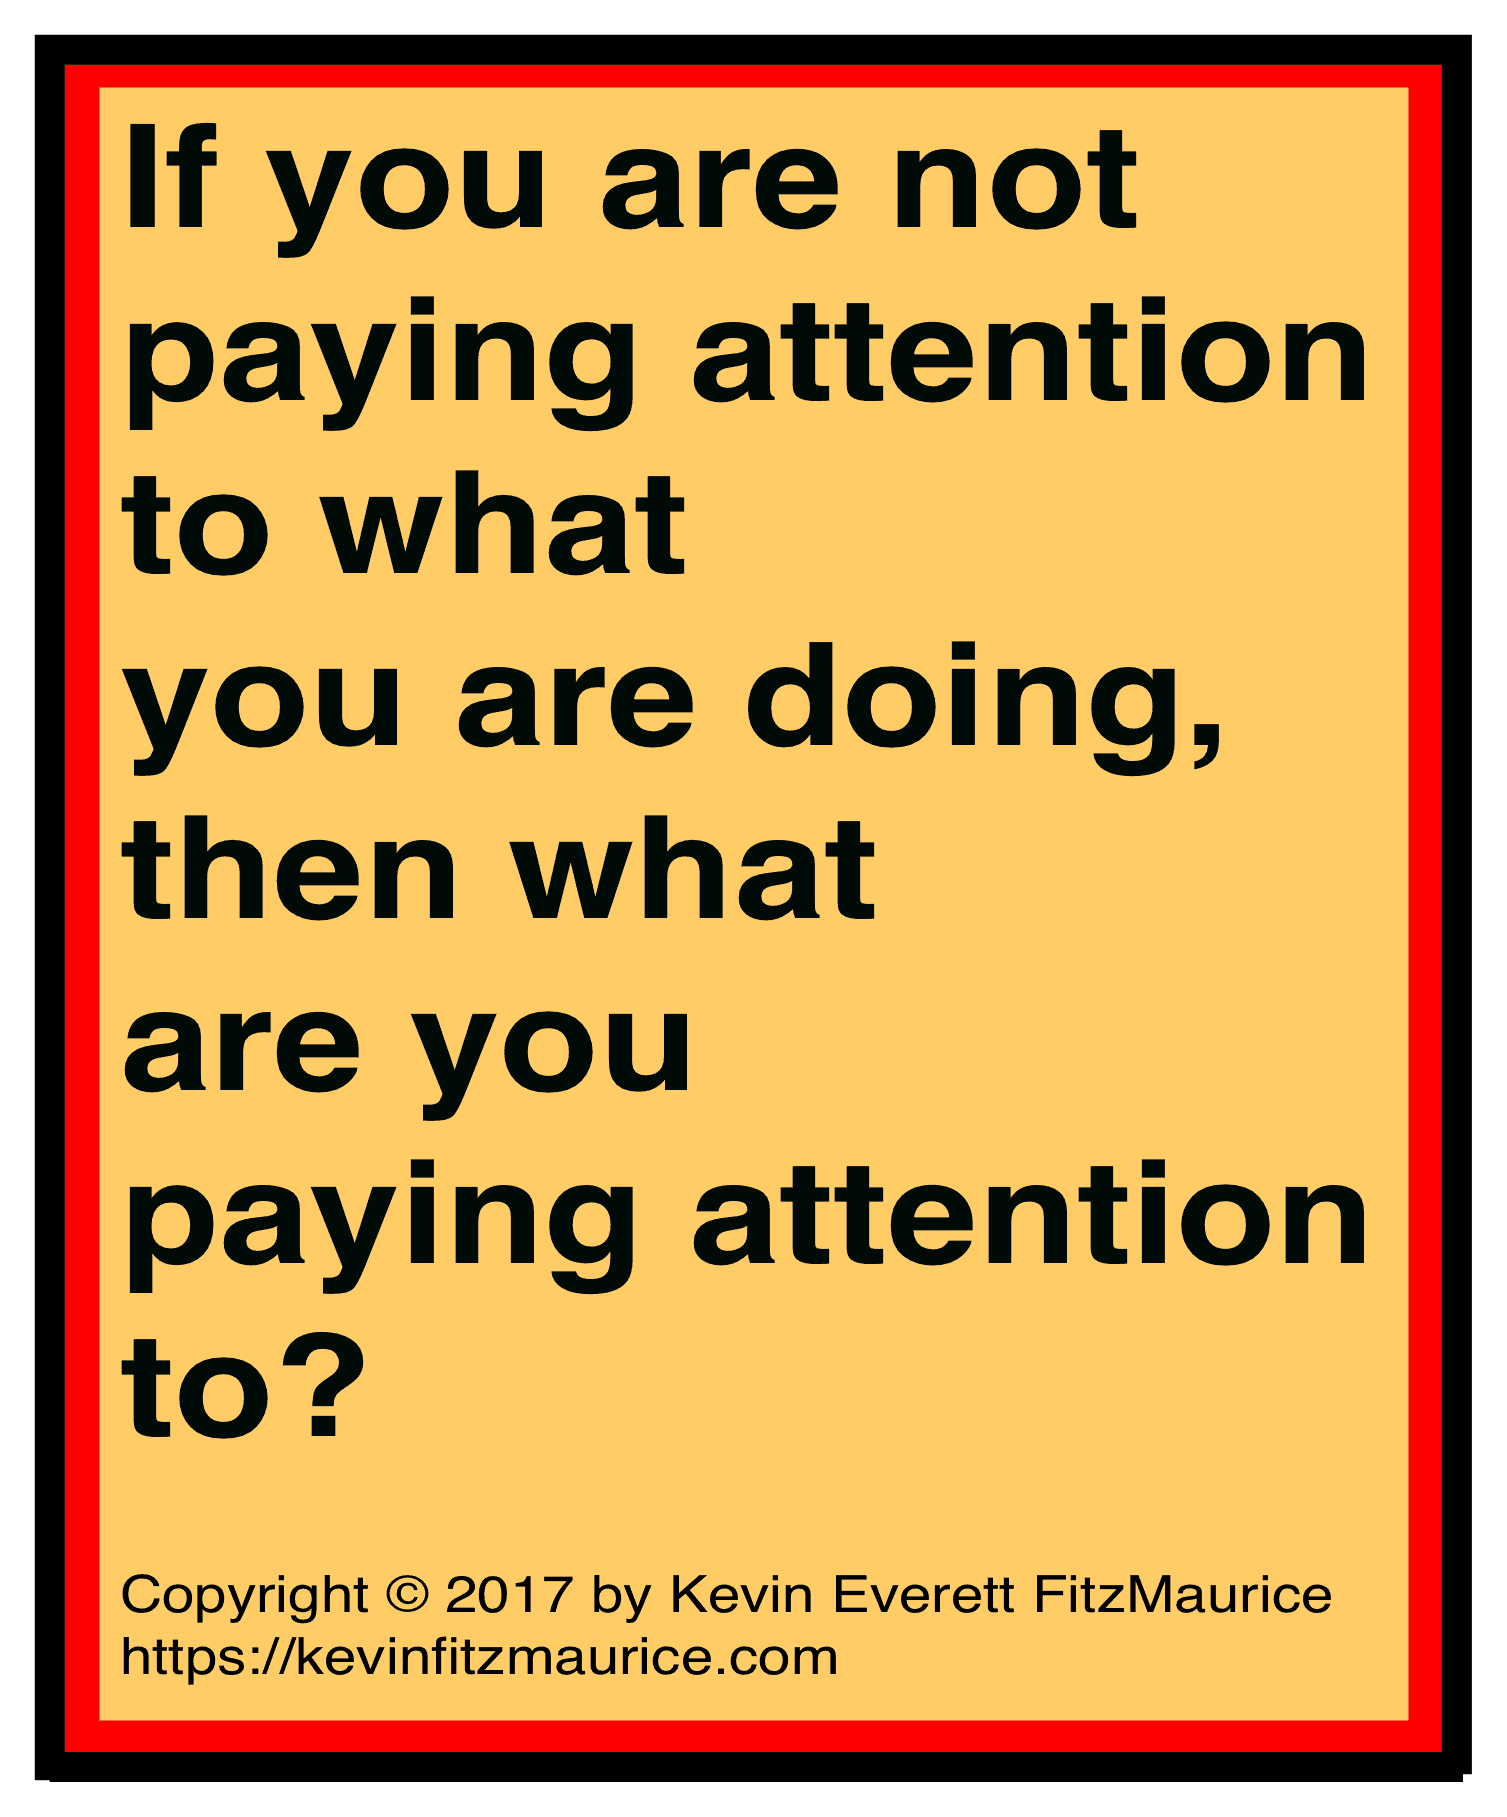 If you are not paying attention?